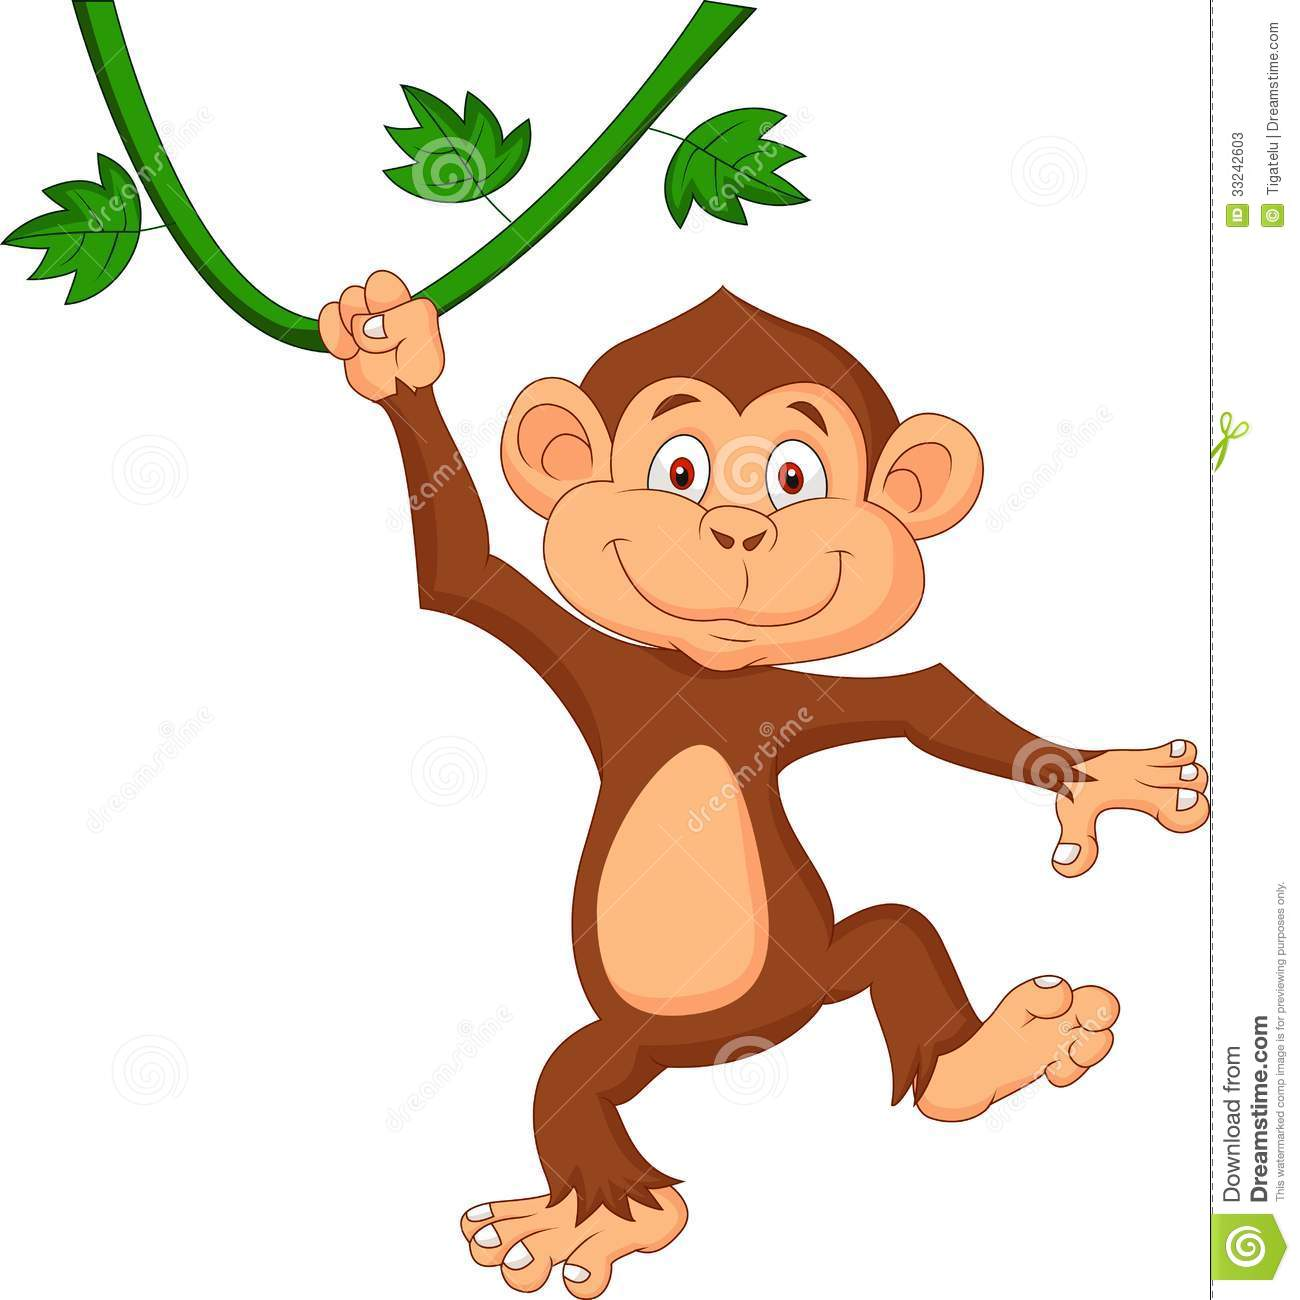 Monkey Hanging Tree Stock Photos, Images, & Pictures.